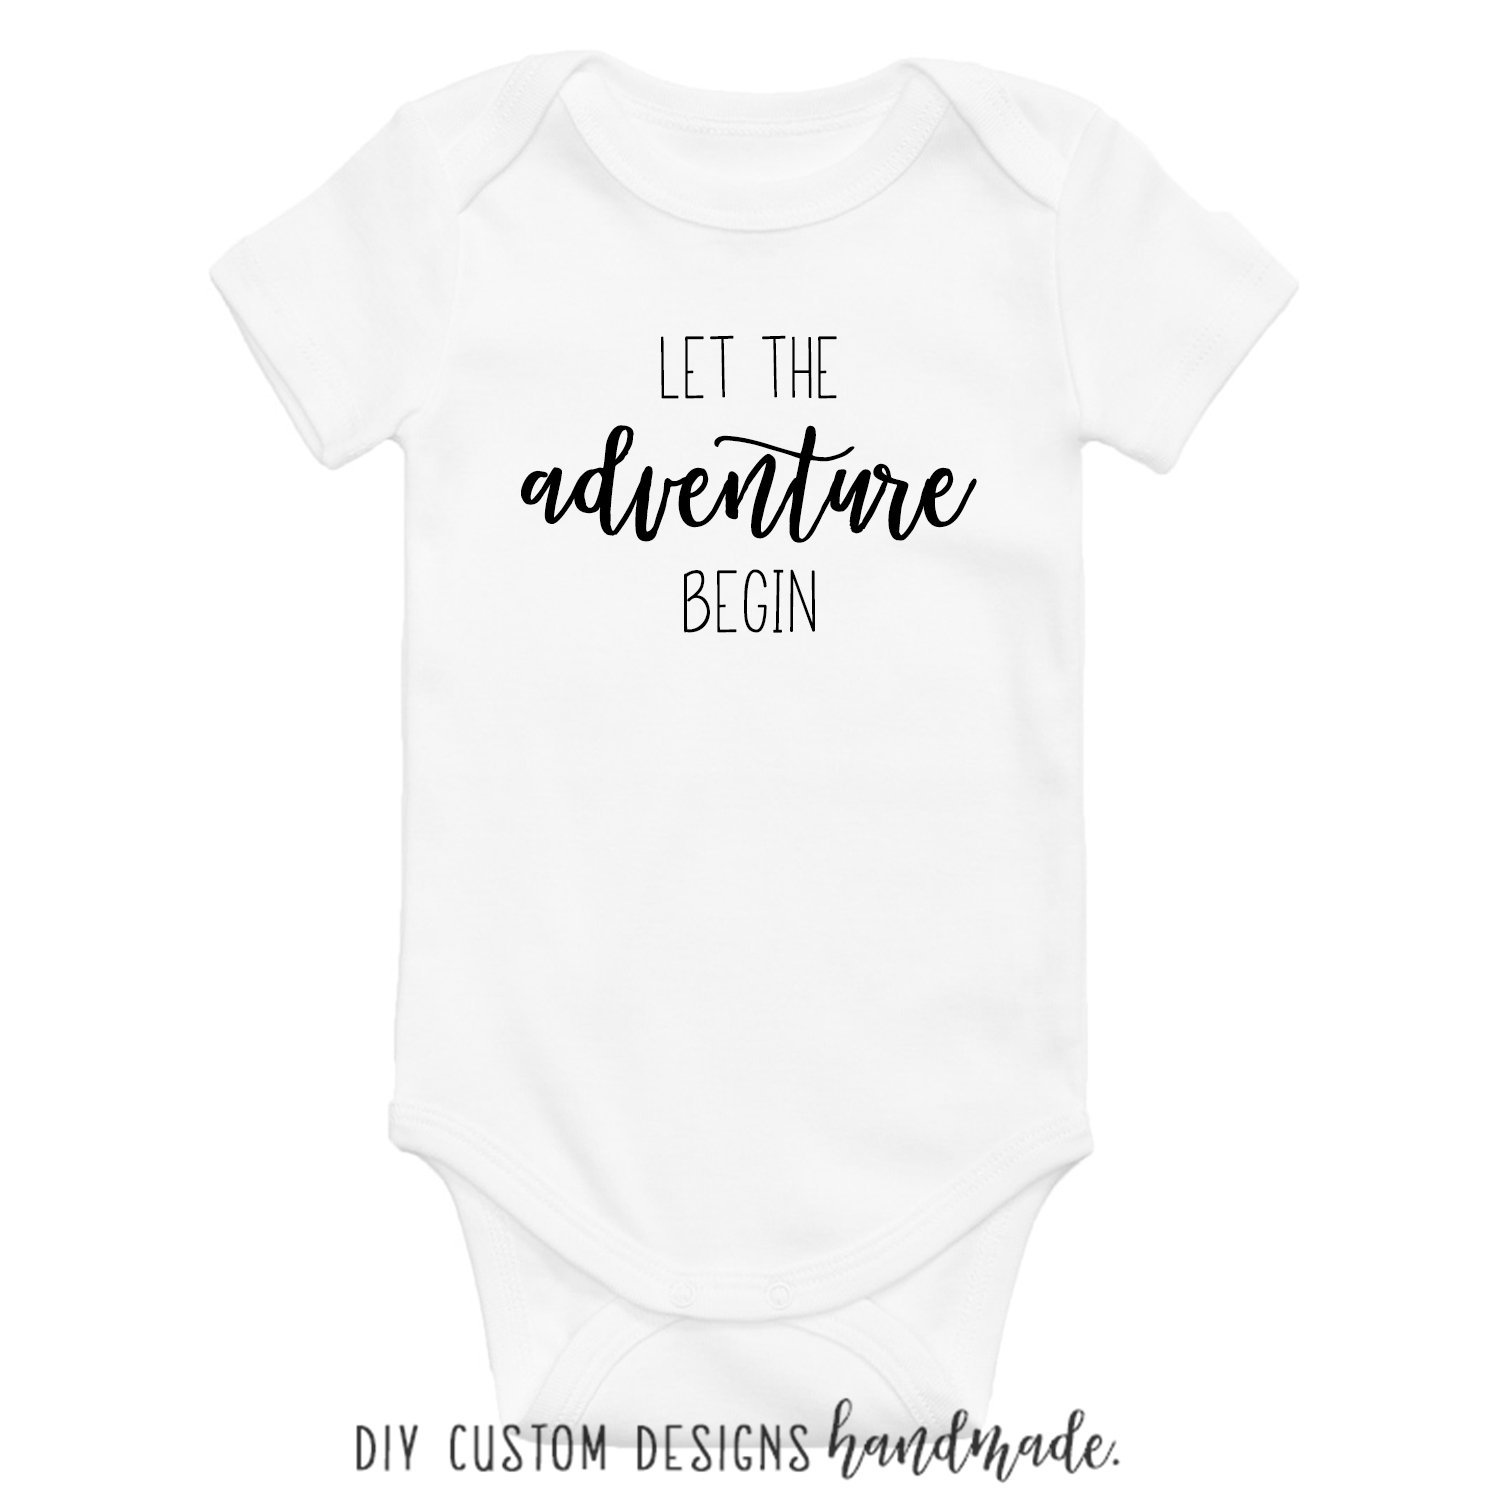 2e312b2e3 Baby Announcement Onesie®, Let the Adventure Begin Baby Onesies®, Pregnancy  Announcement Onesies®, Baby Bodysuit, Newborn Coming Home Outfit